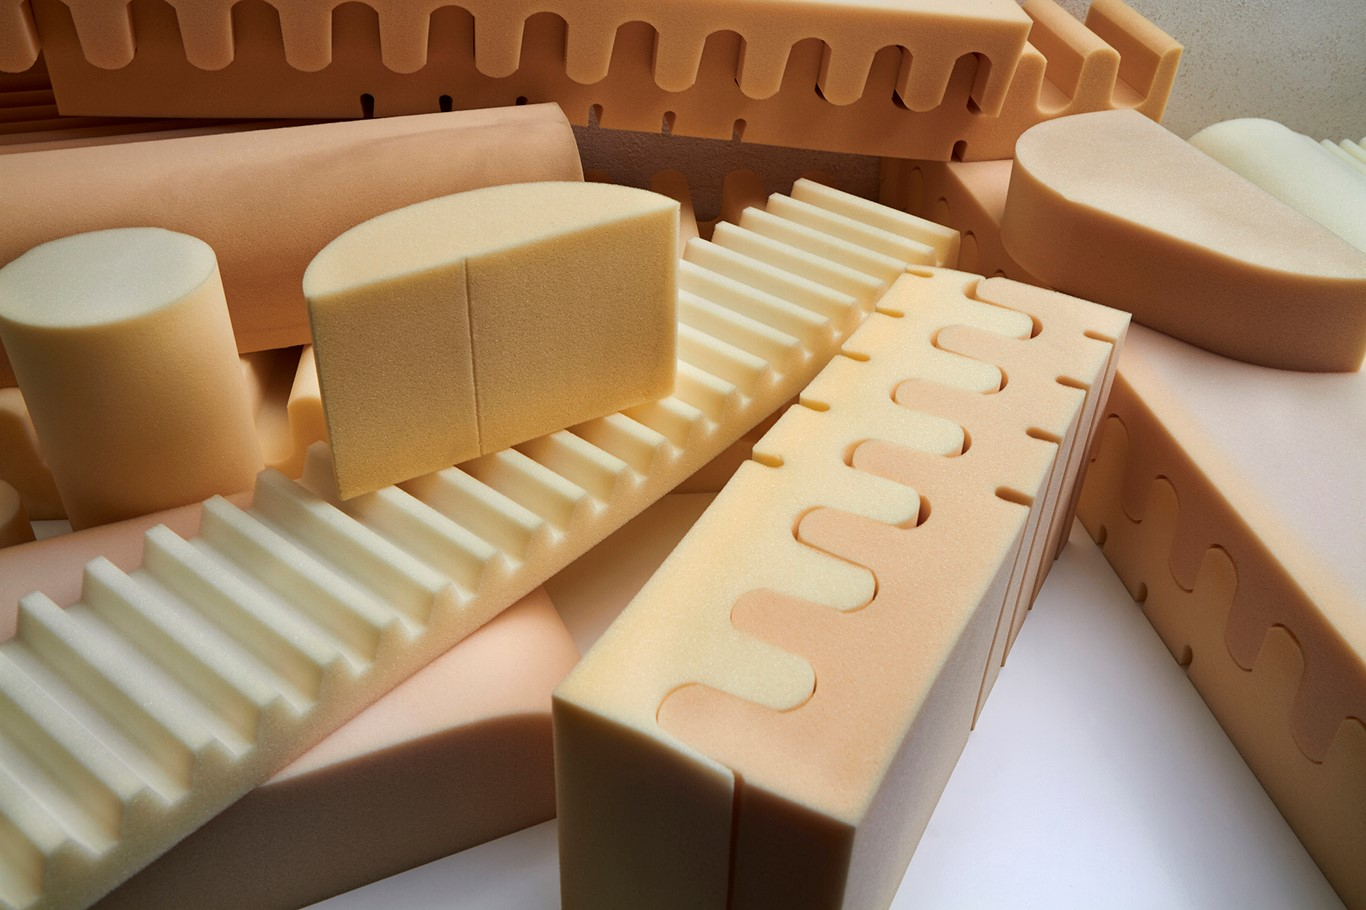 Production of molded polyurethane foam products for various industries